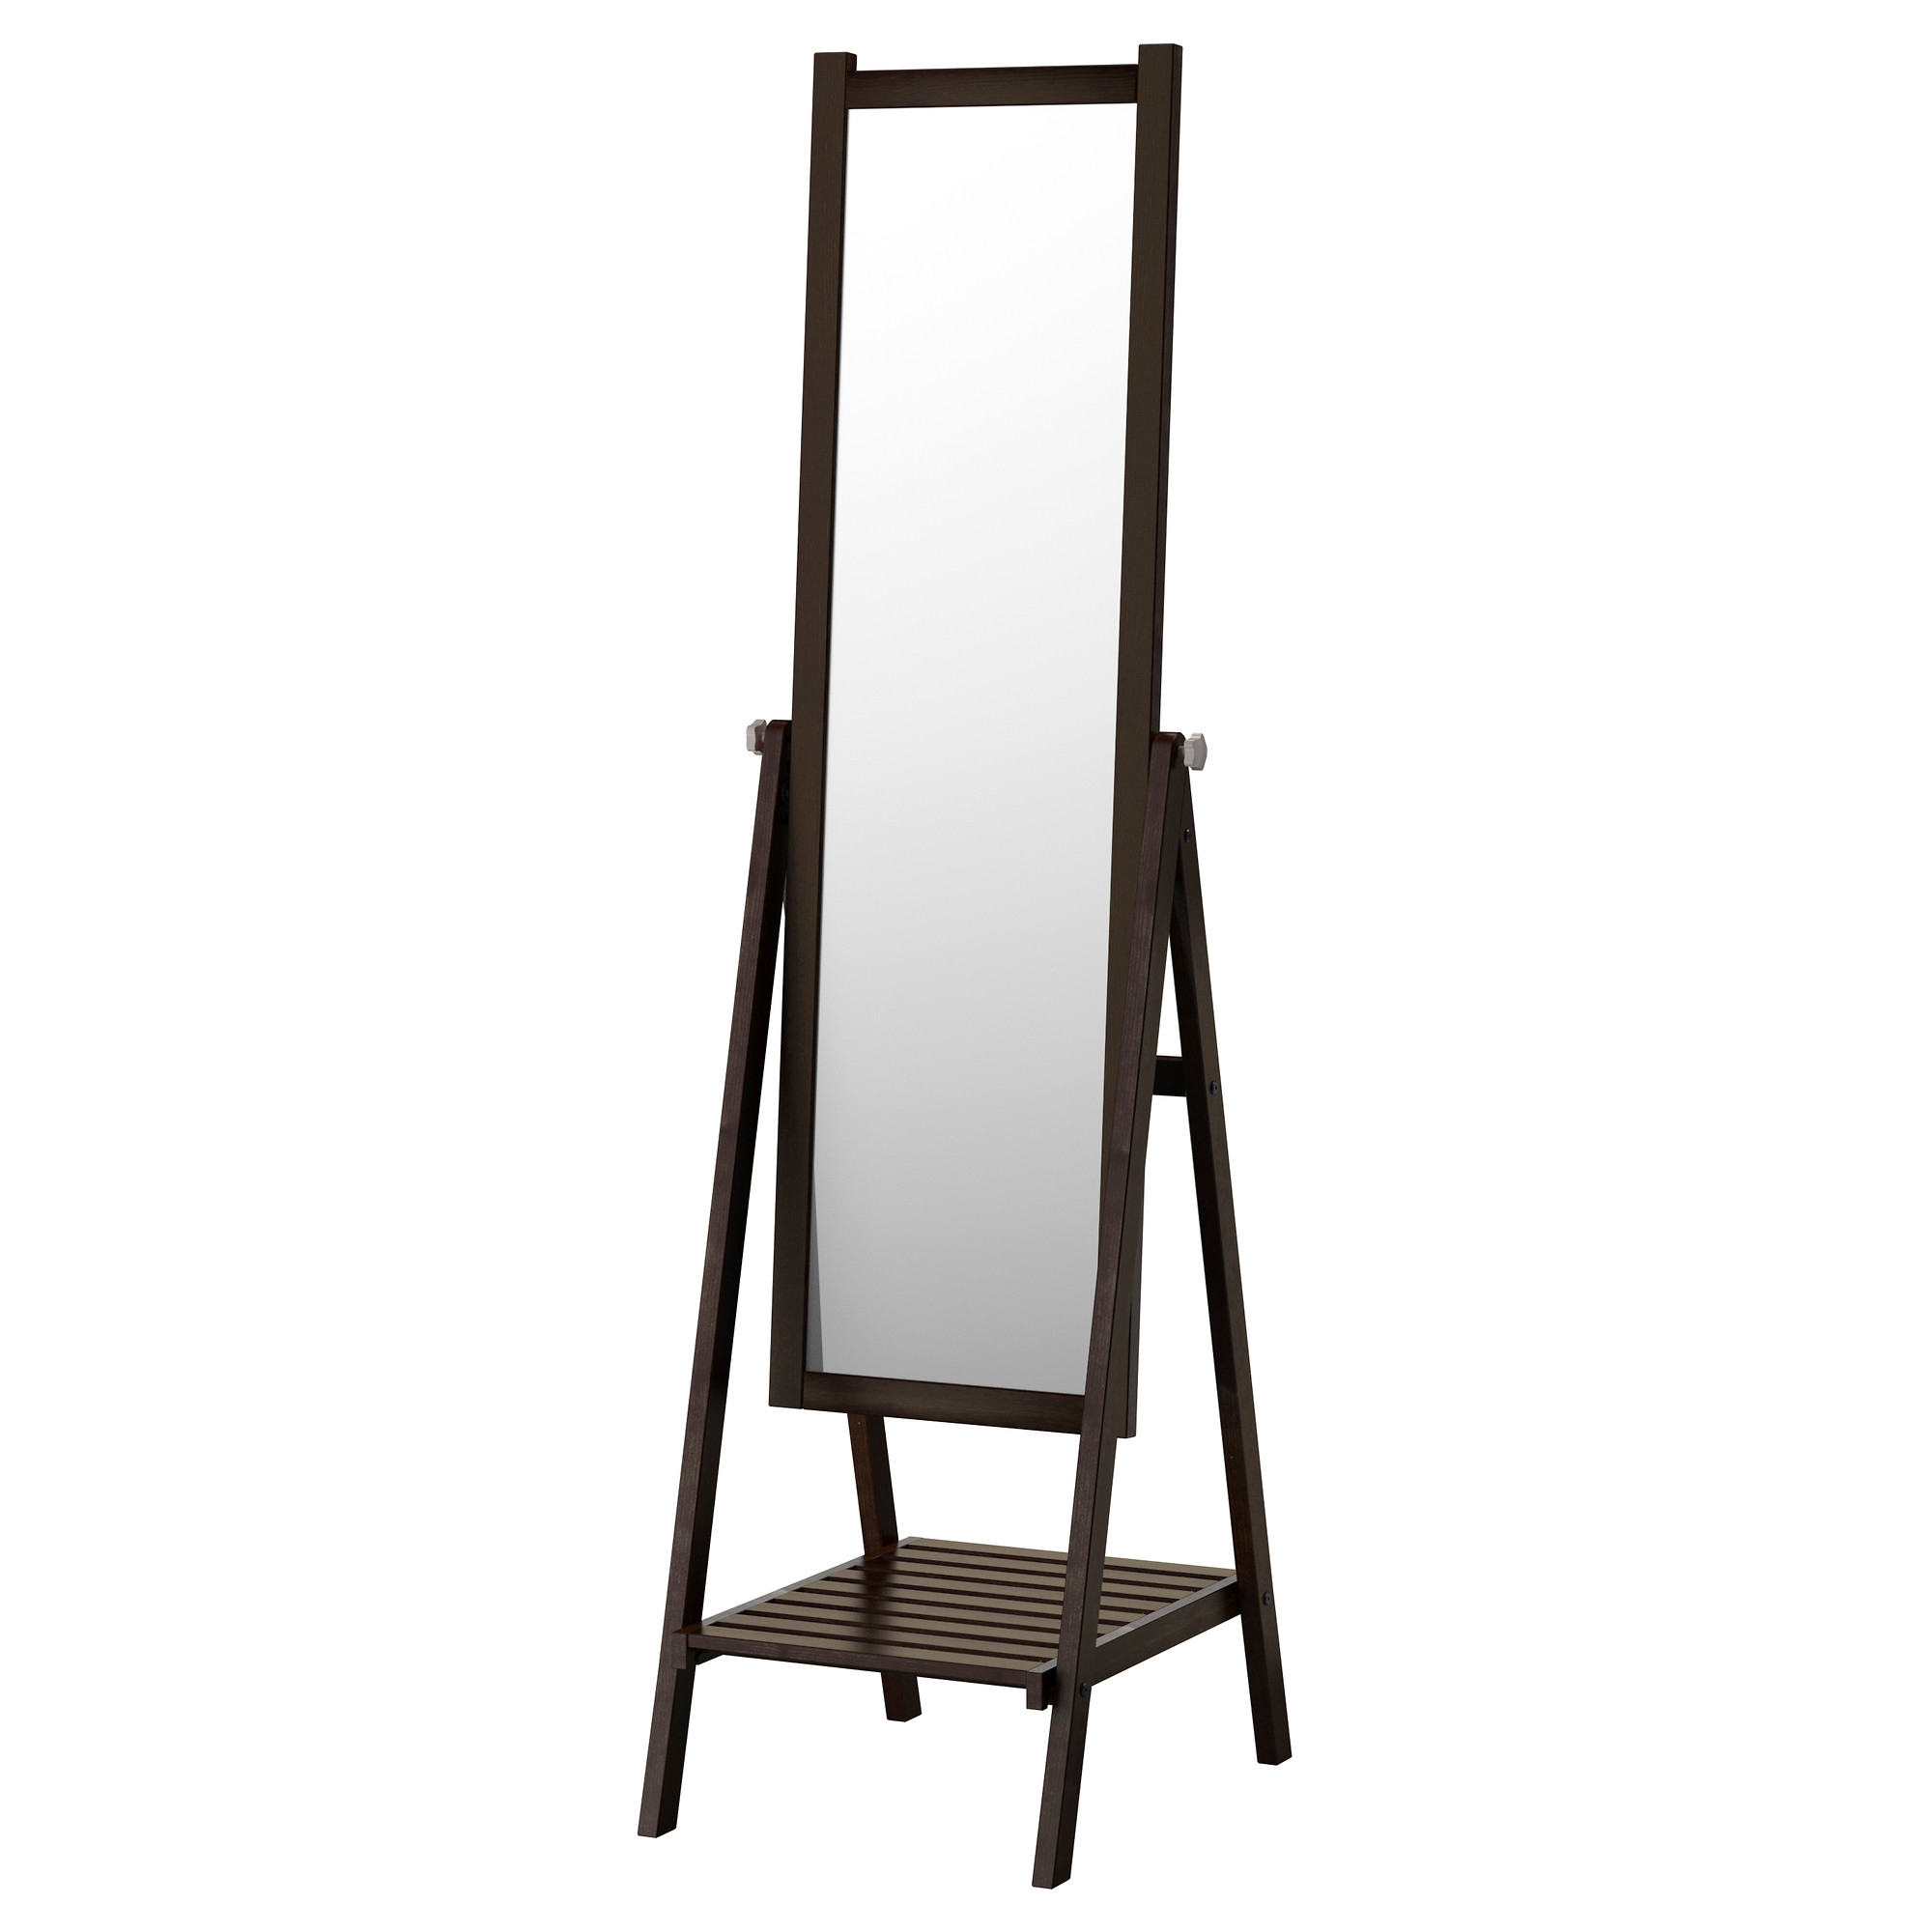 Full Length Mirrors Ikea For Large Stand Alone Mirror (Image 7 of 15)